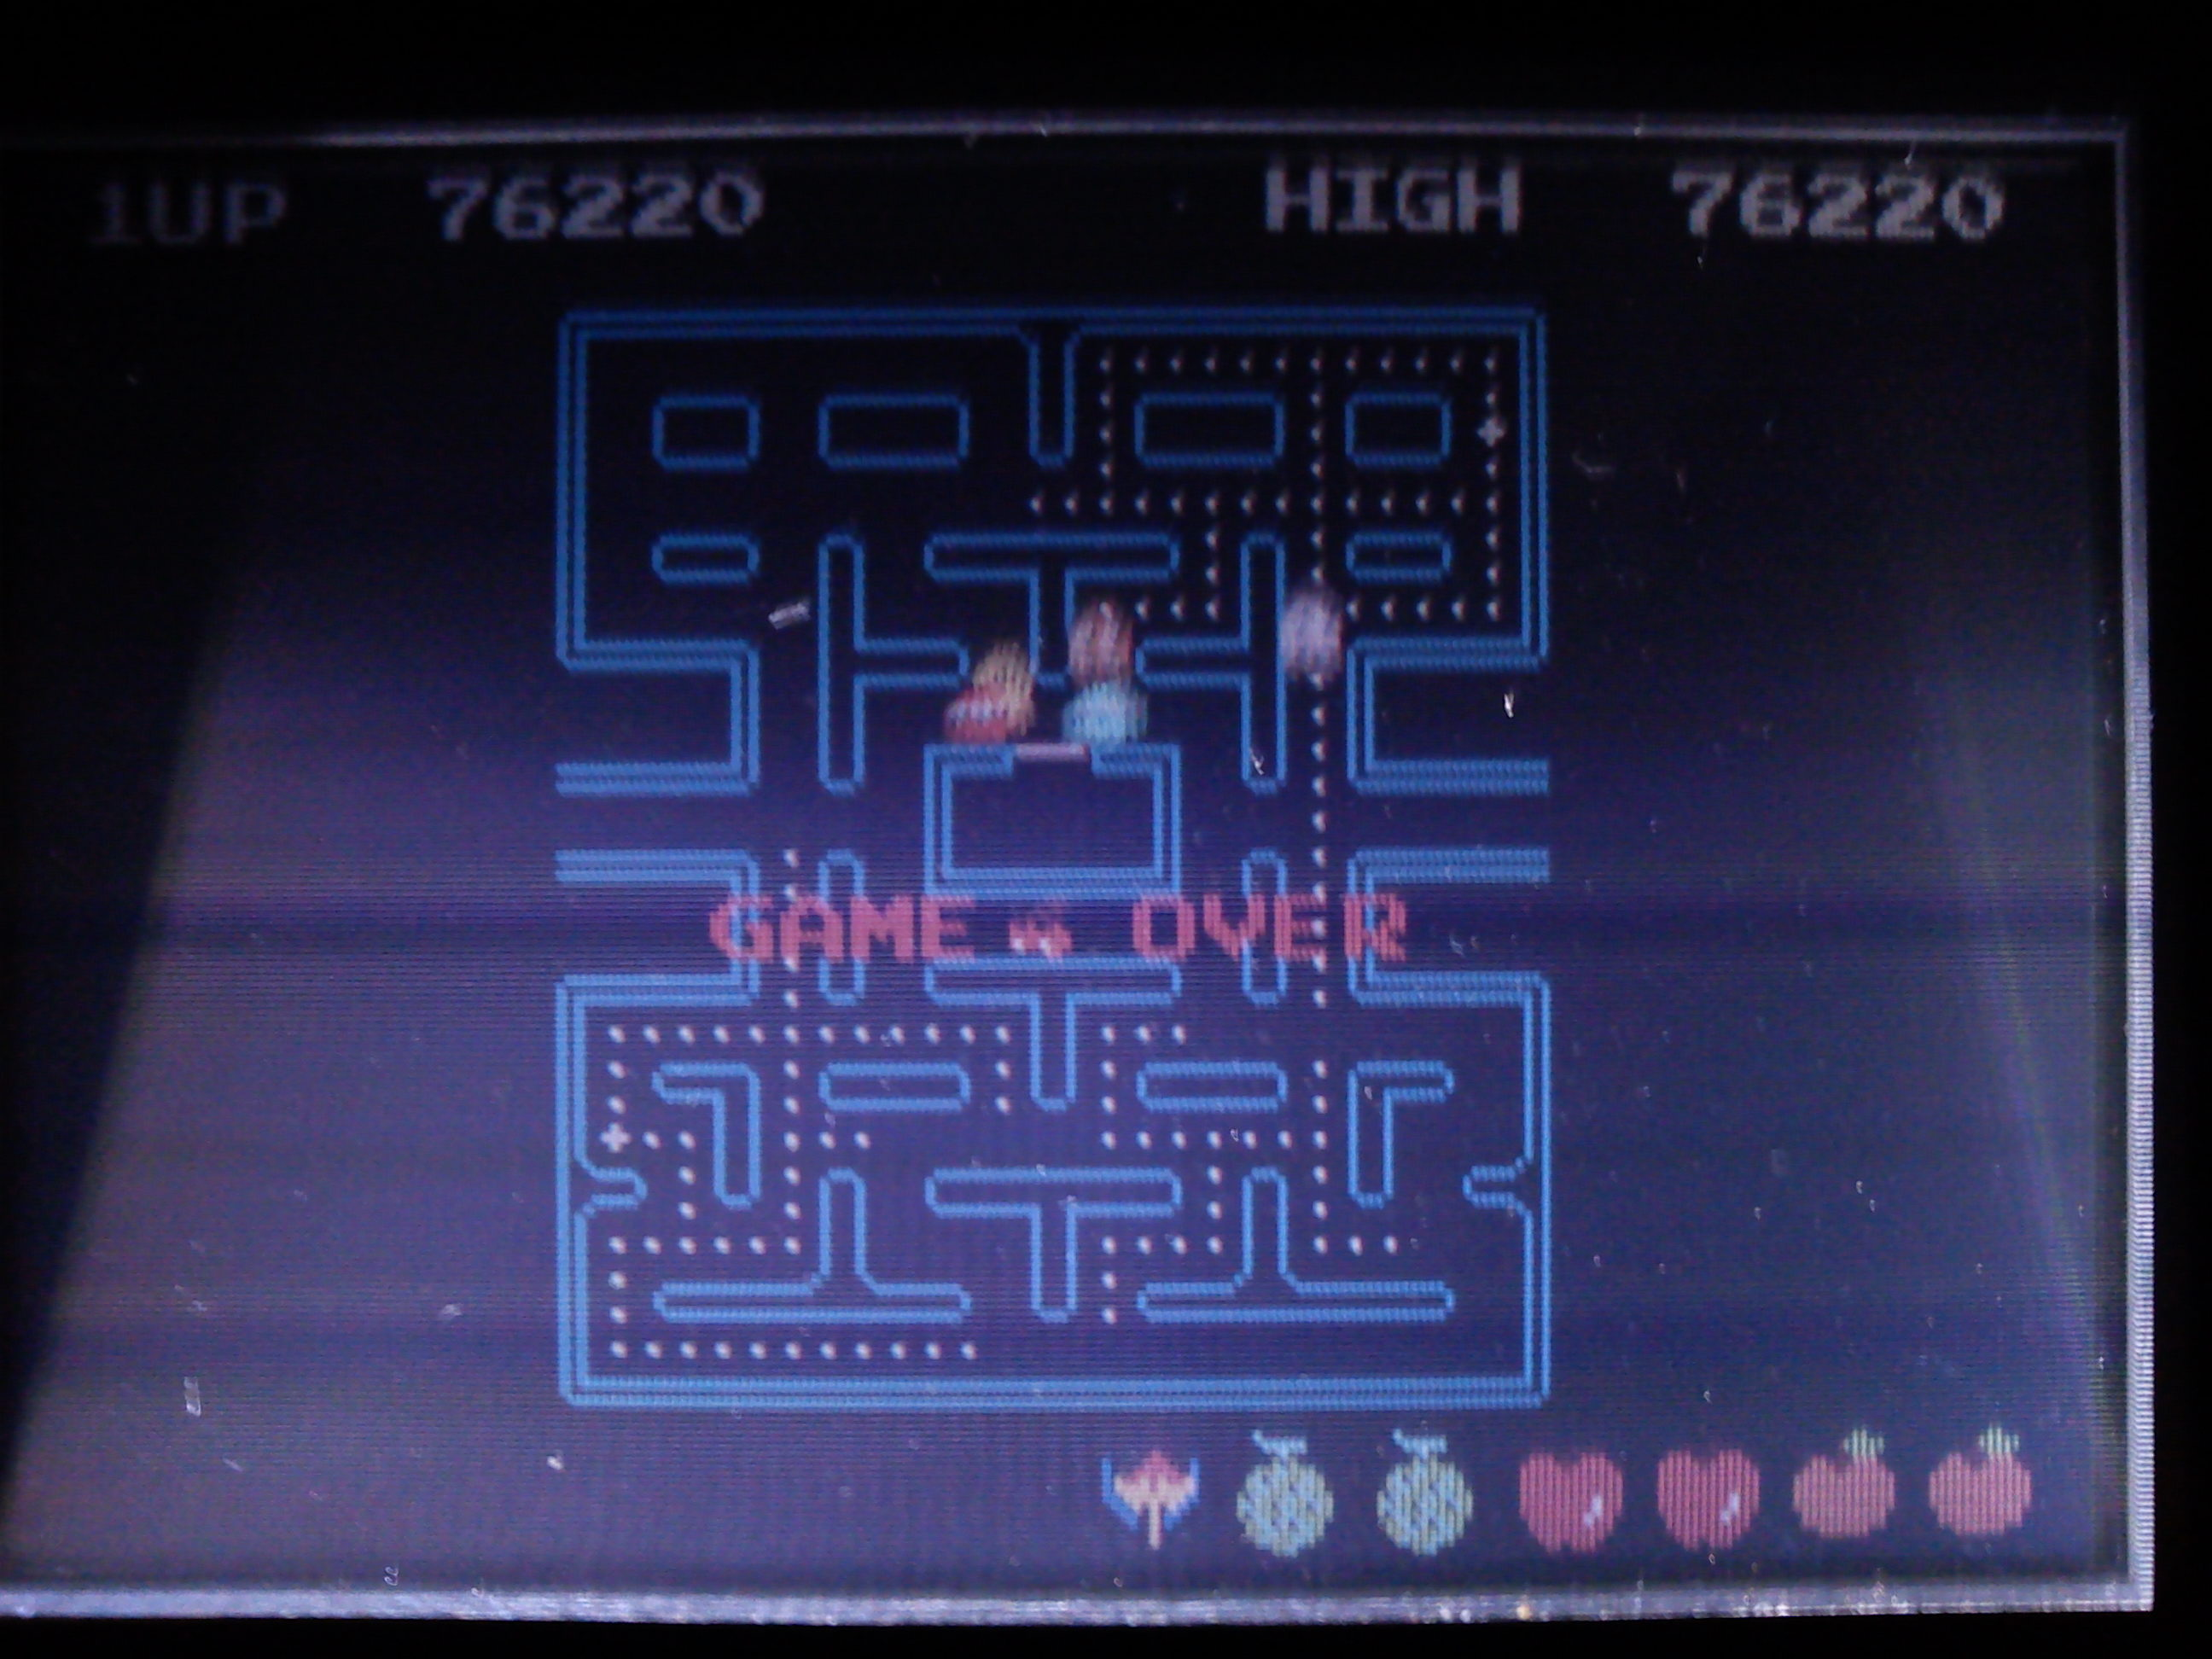 Pac-Man Collection: Pac-Man 76,220 points